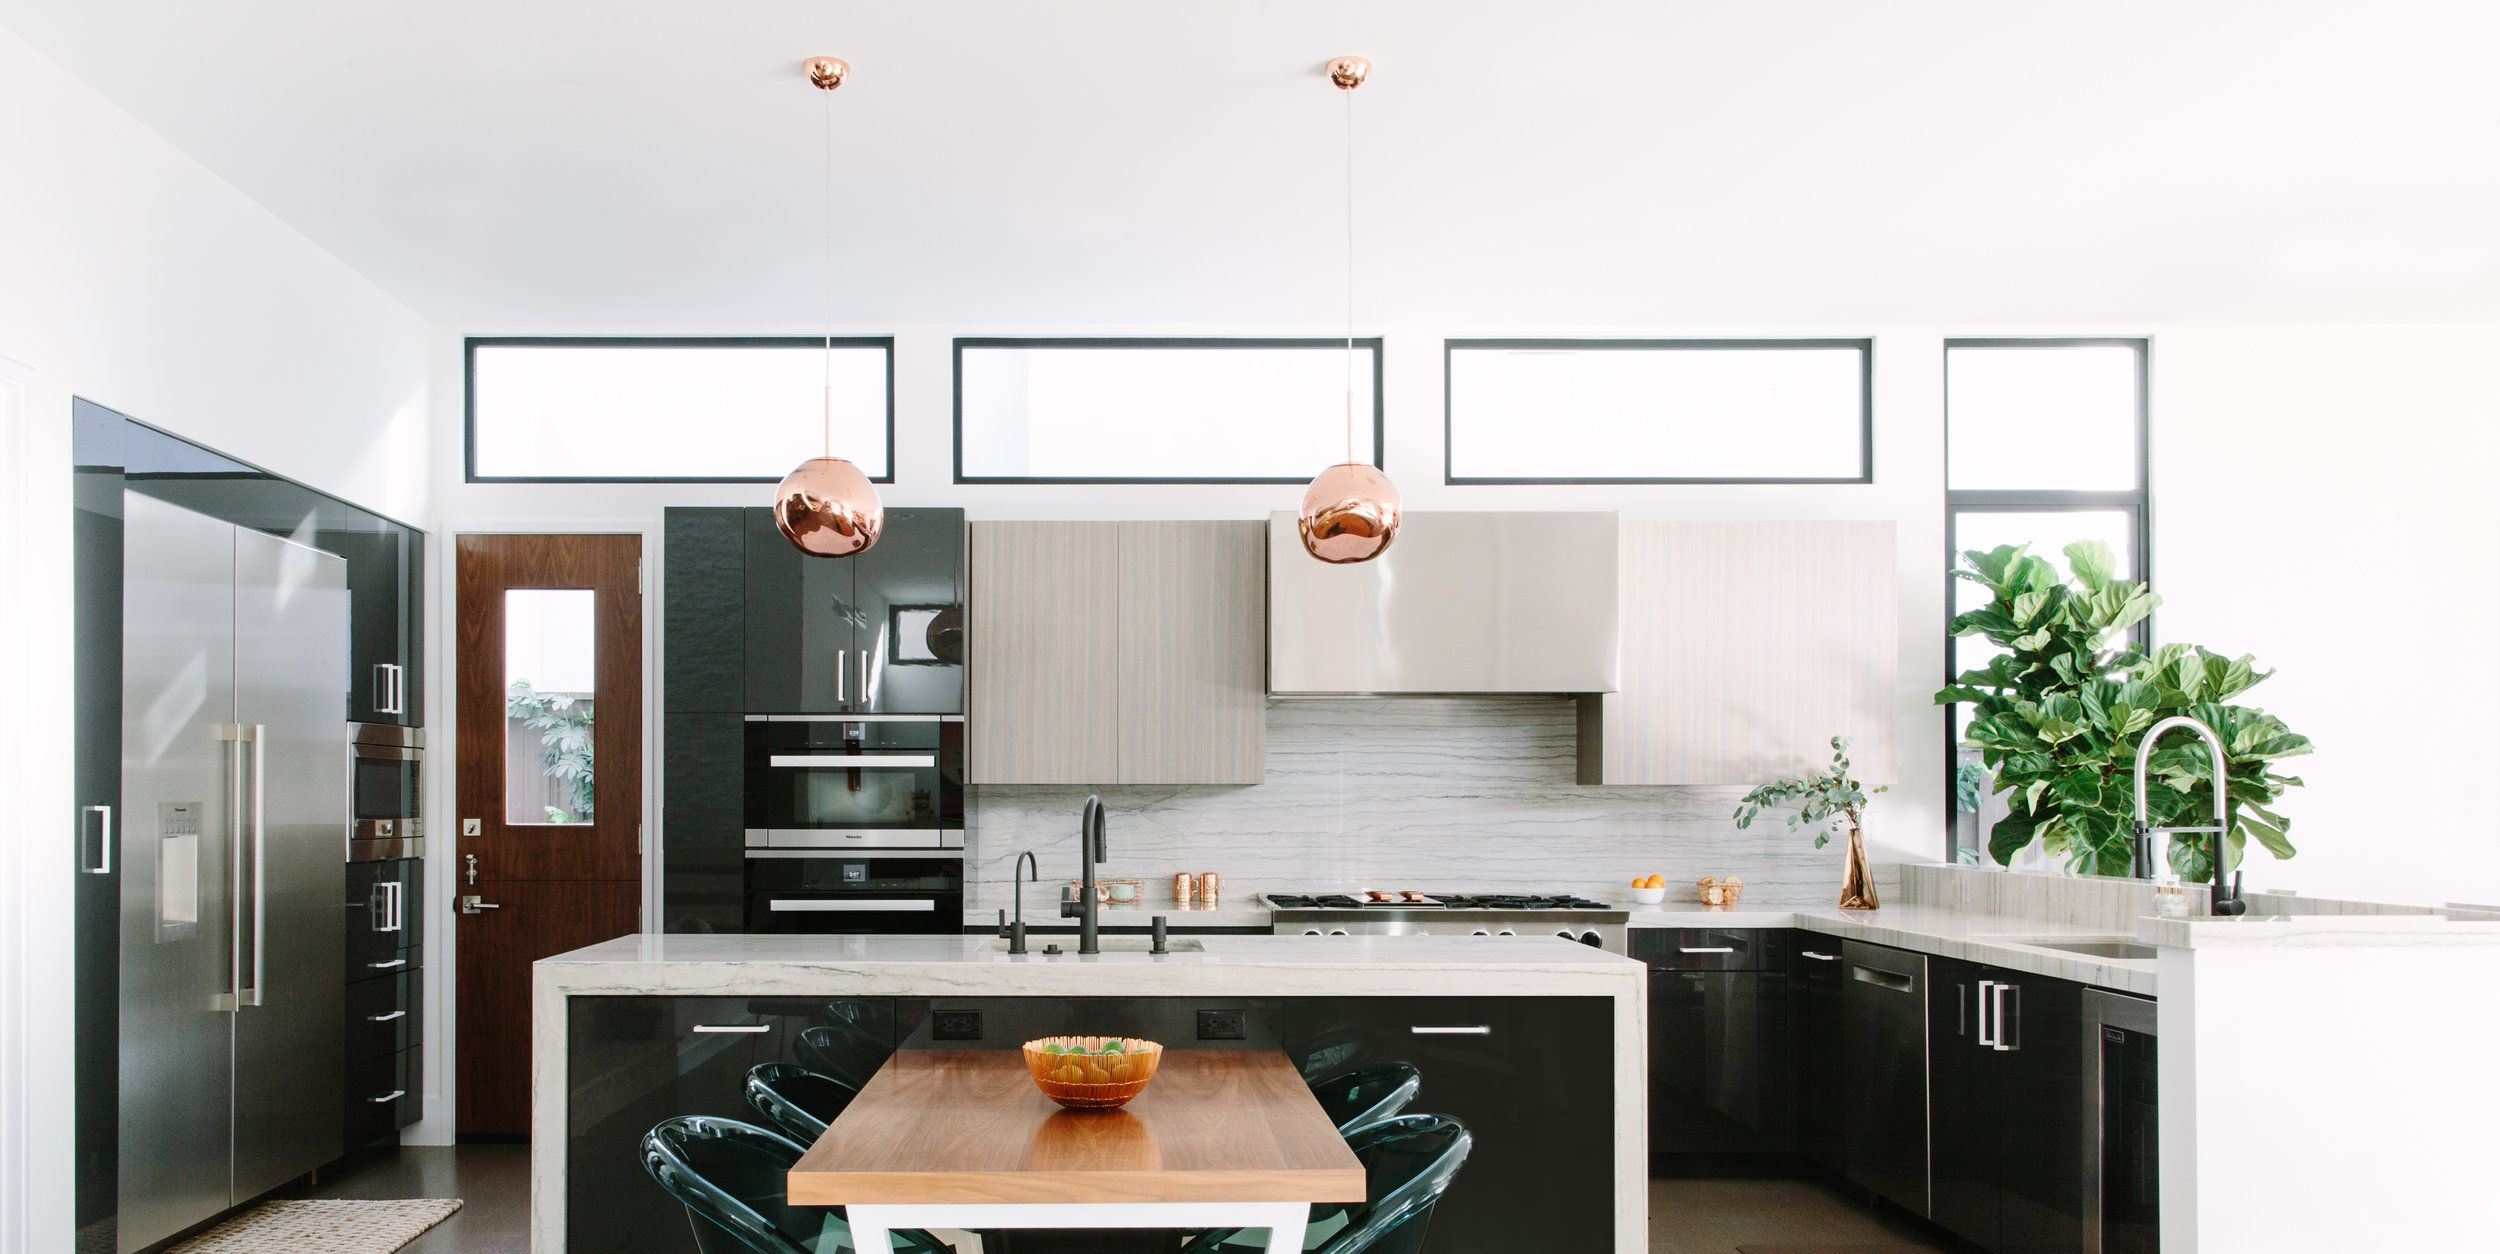 40 Light Fixtures That Will Transform Your Kitchen